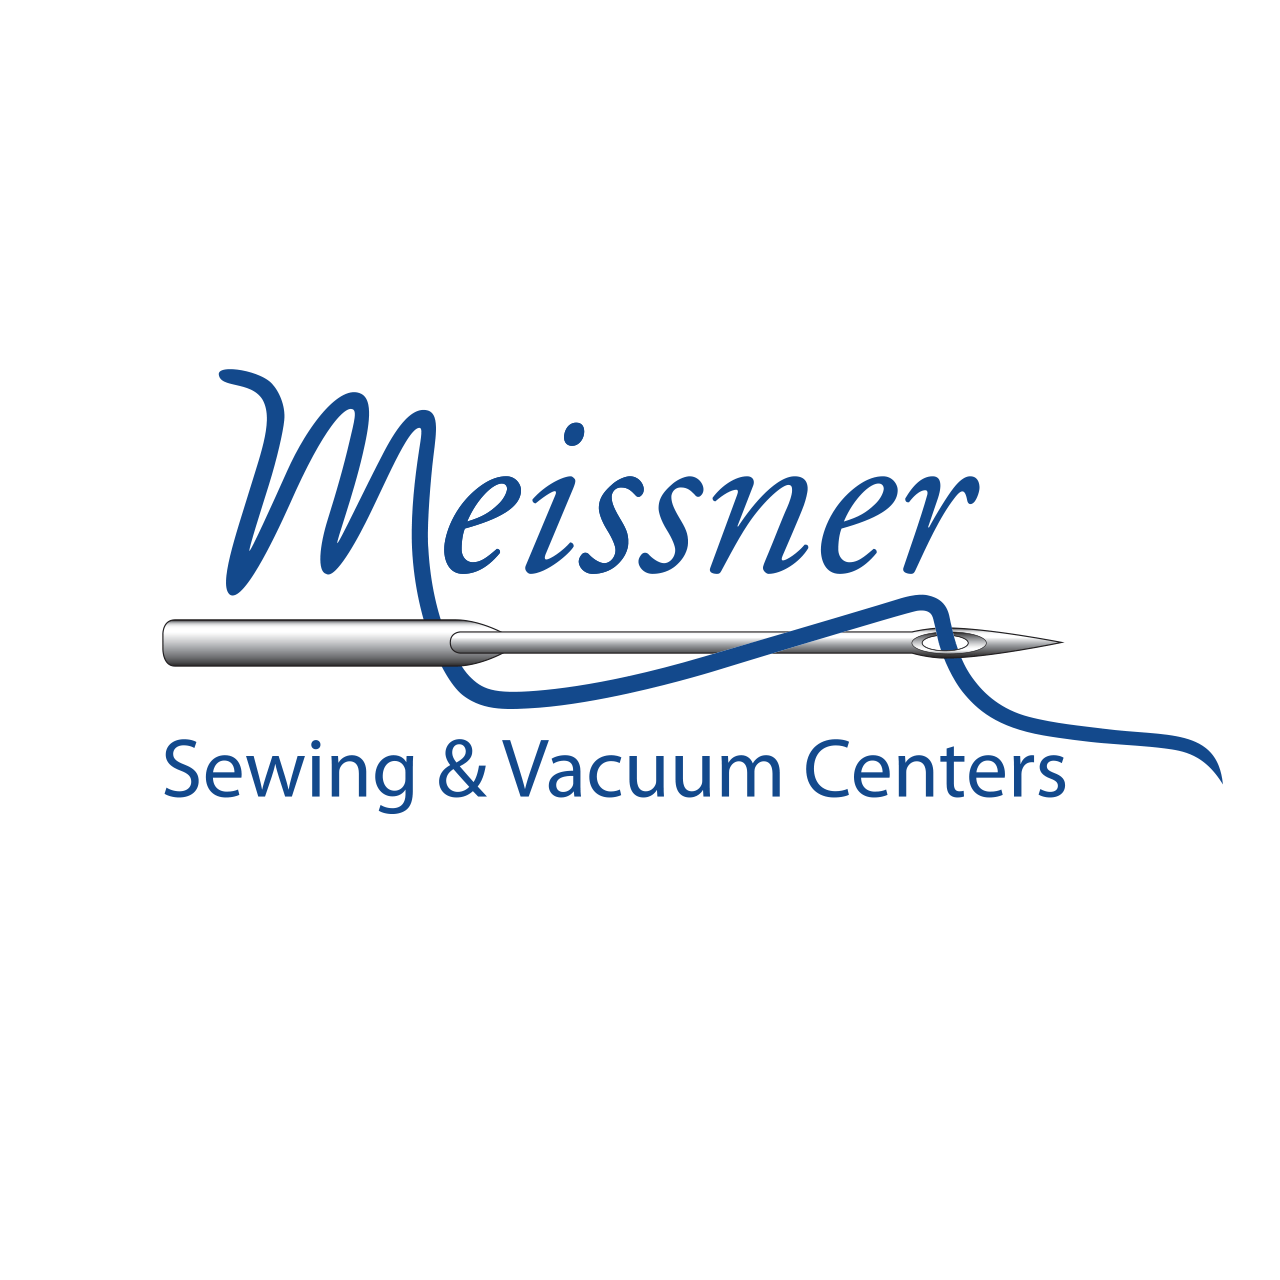 Viking Designer Epic Sewing & Embroidery Machine | Meissner Sewing on